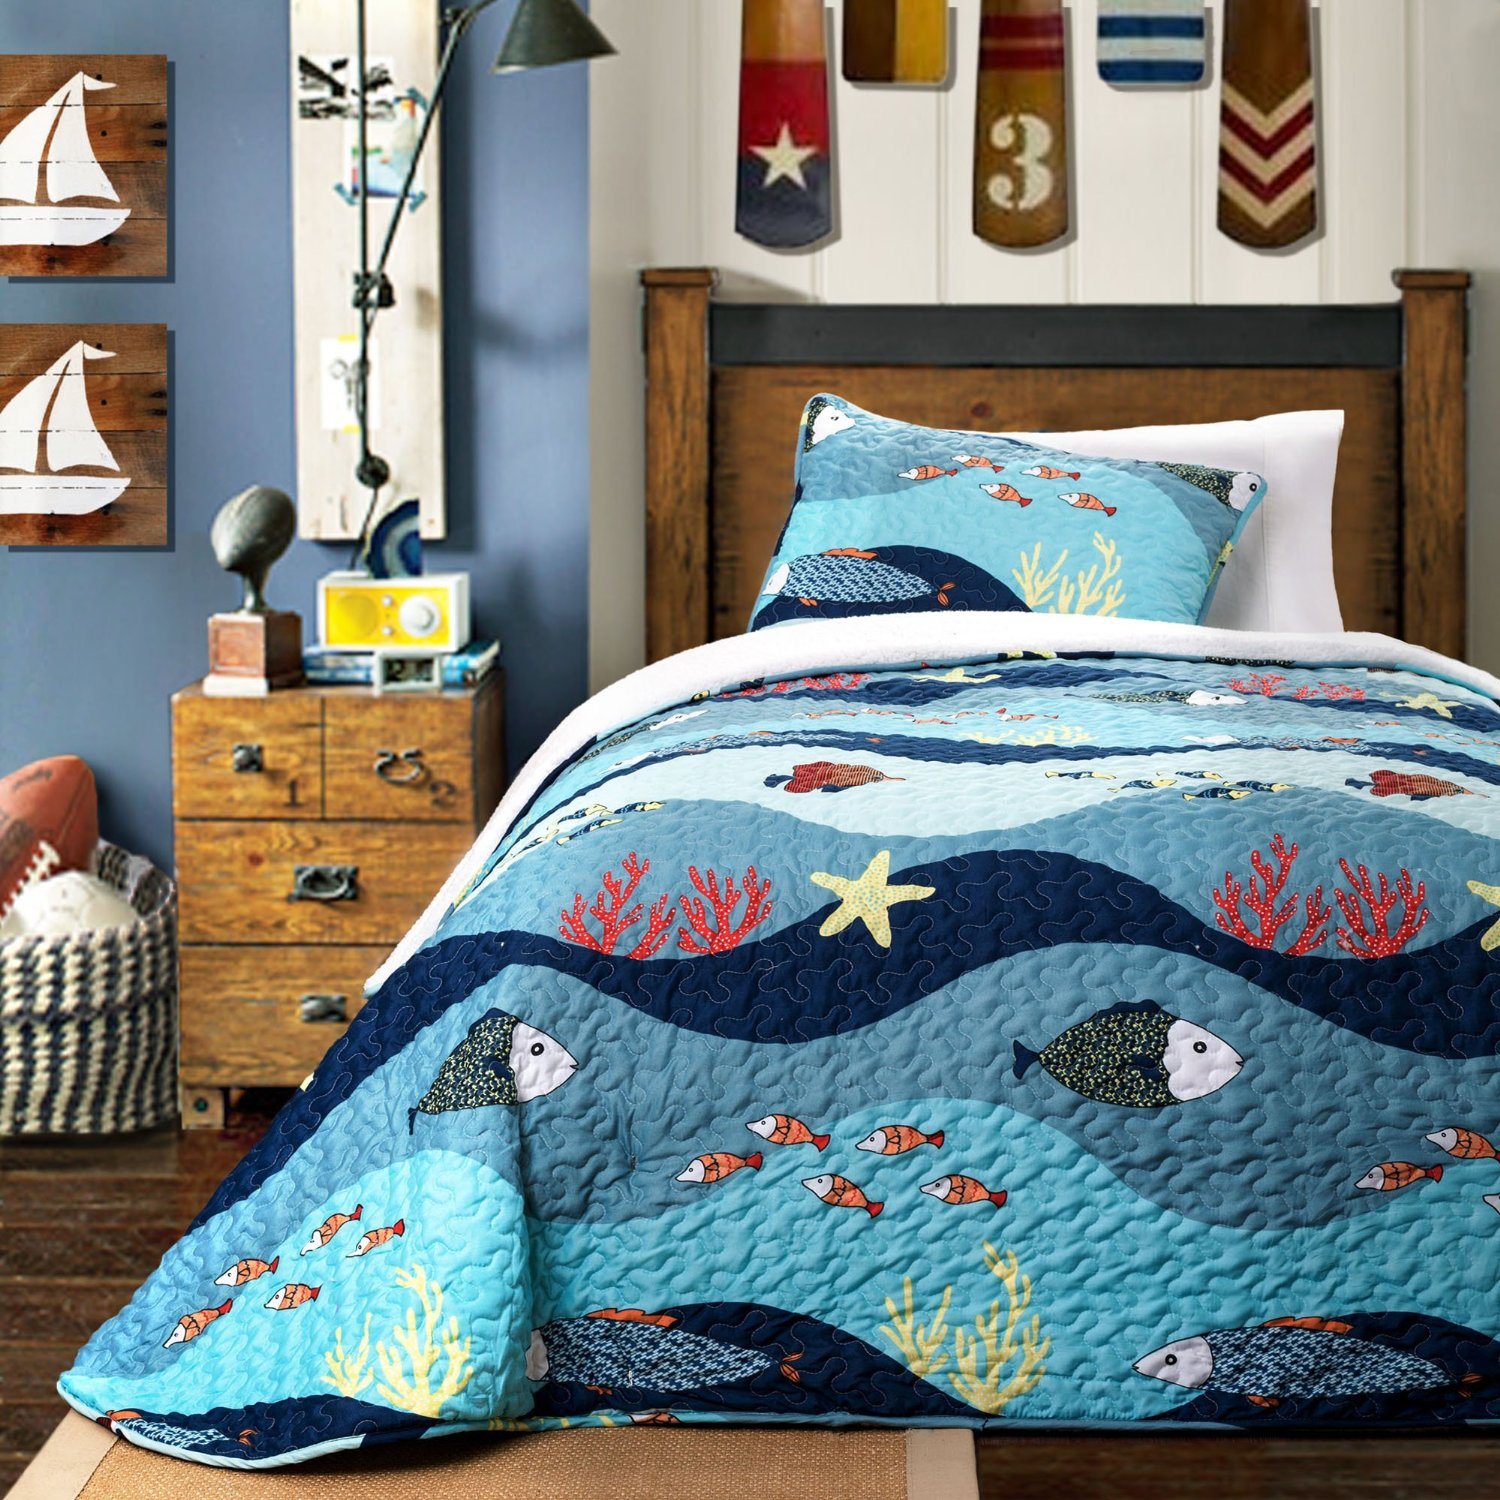 Matrimonio Bed Ocean : Ocean themed bedding webnuggetz